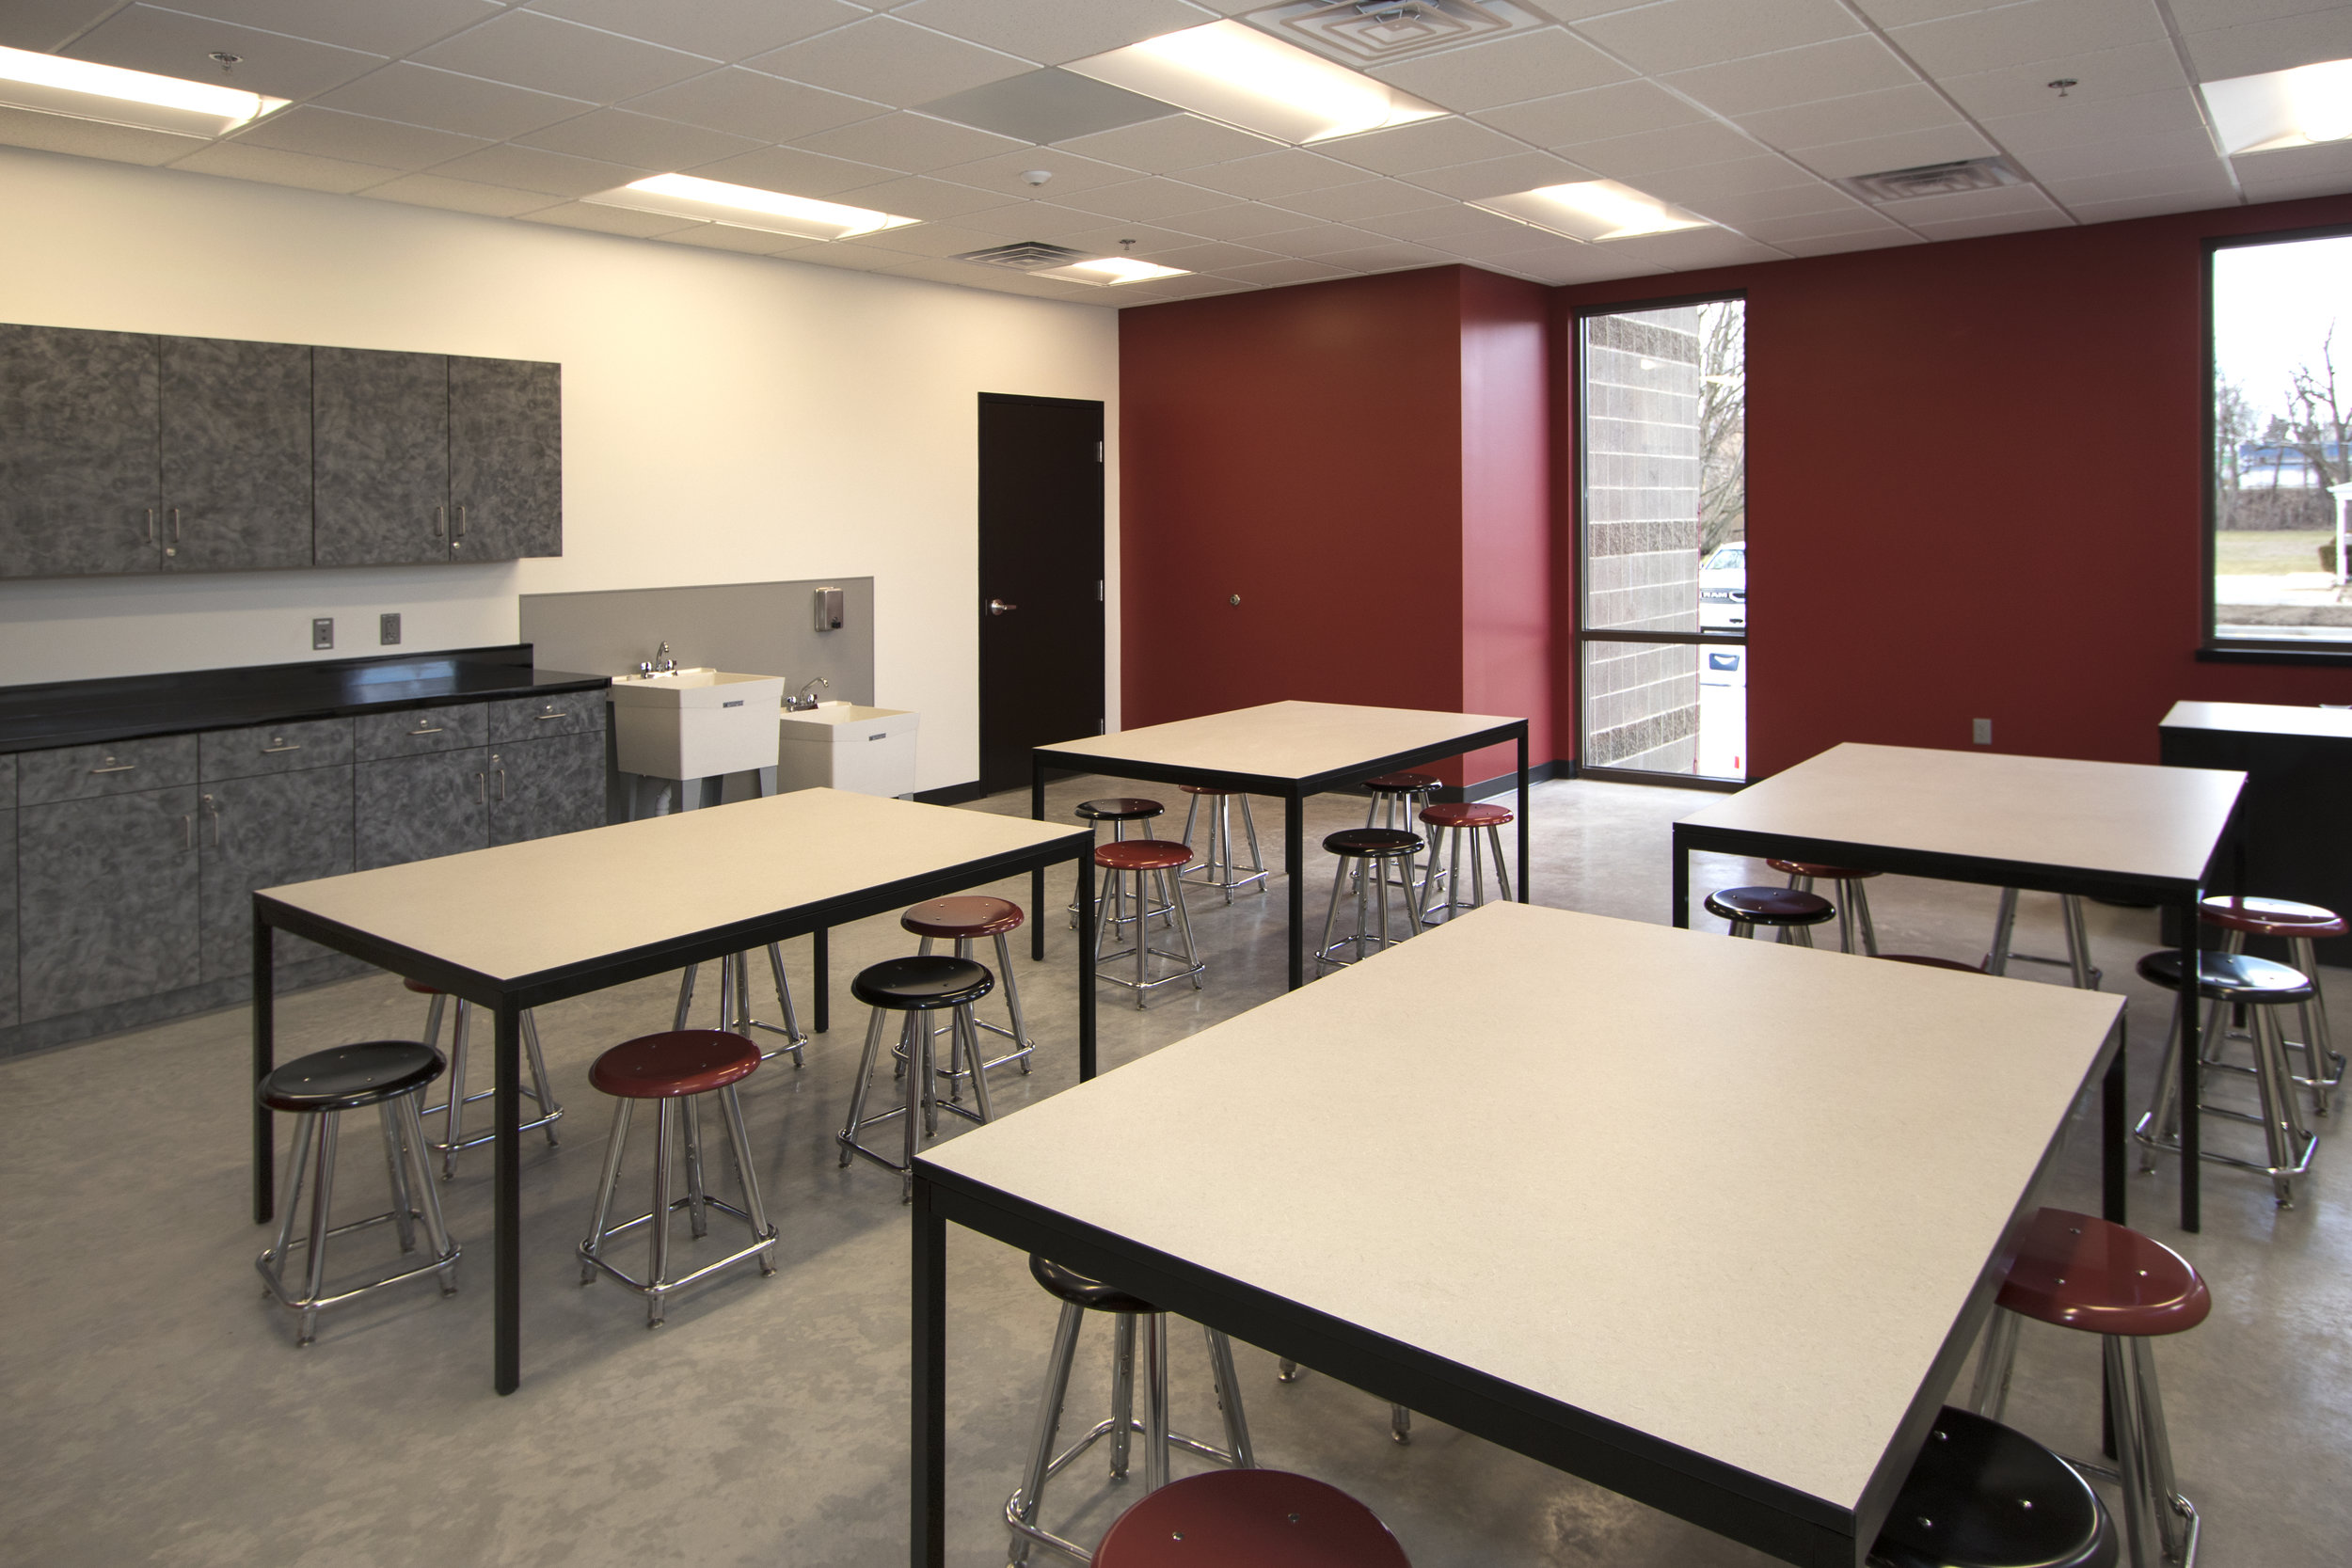 Plymouth Boys and Girls Club Classroom 2.jpg